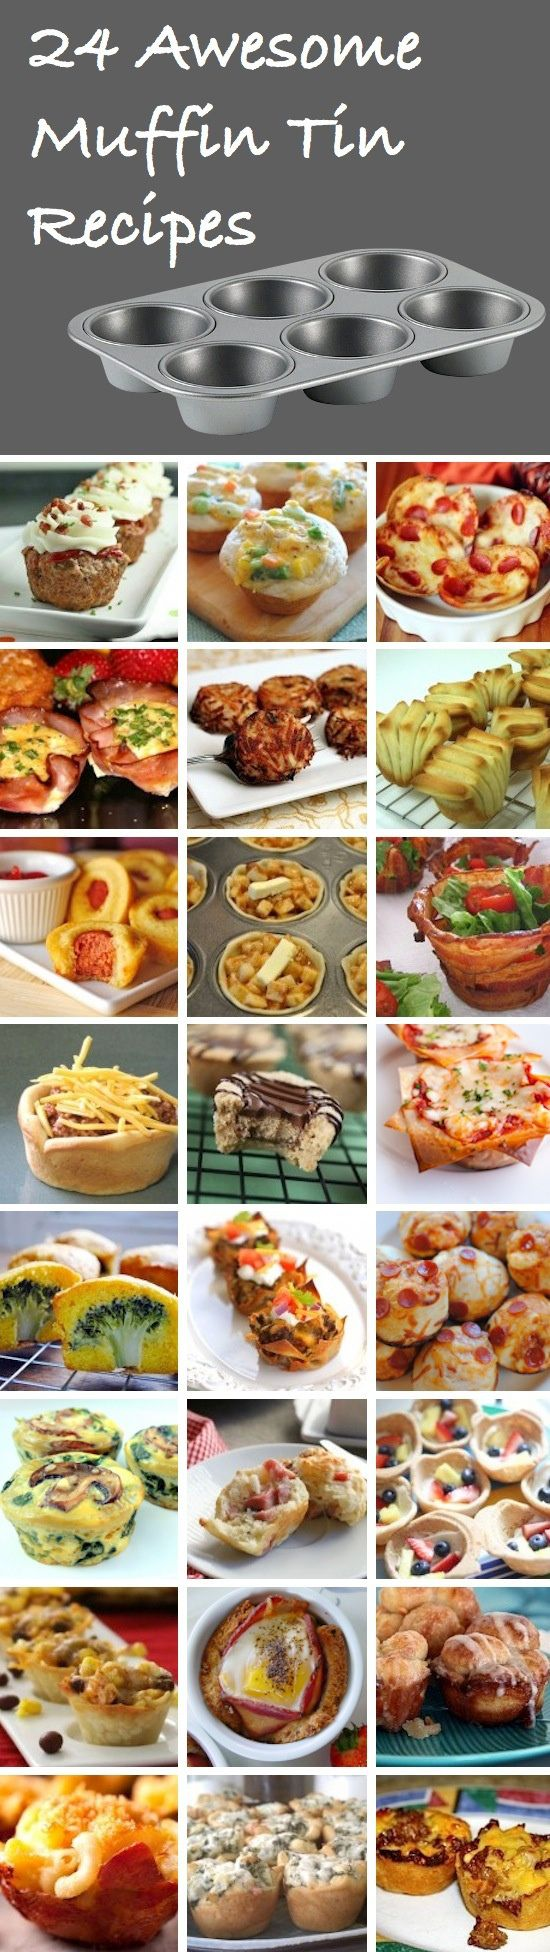 24 Awesome Muffin Tin Recipes http://doitandhow.com/2013/02/20/24-awesome-muffin-tin-recipes/